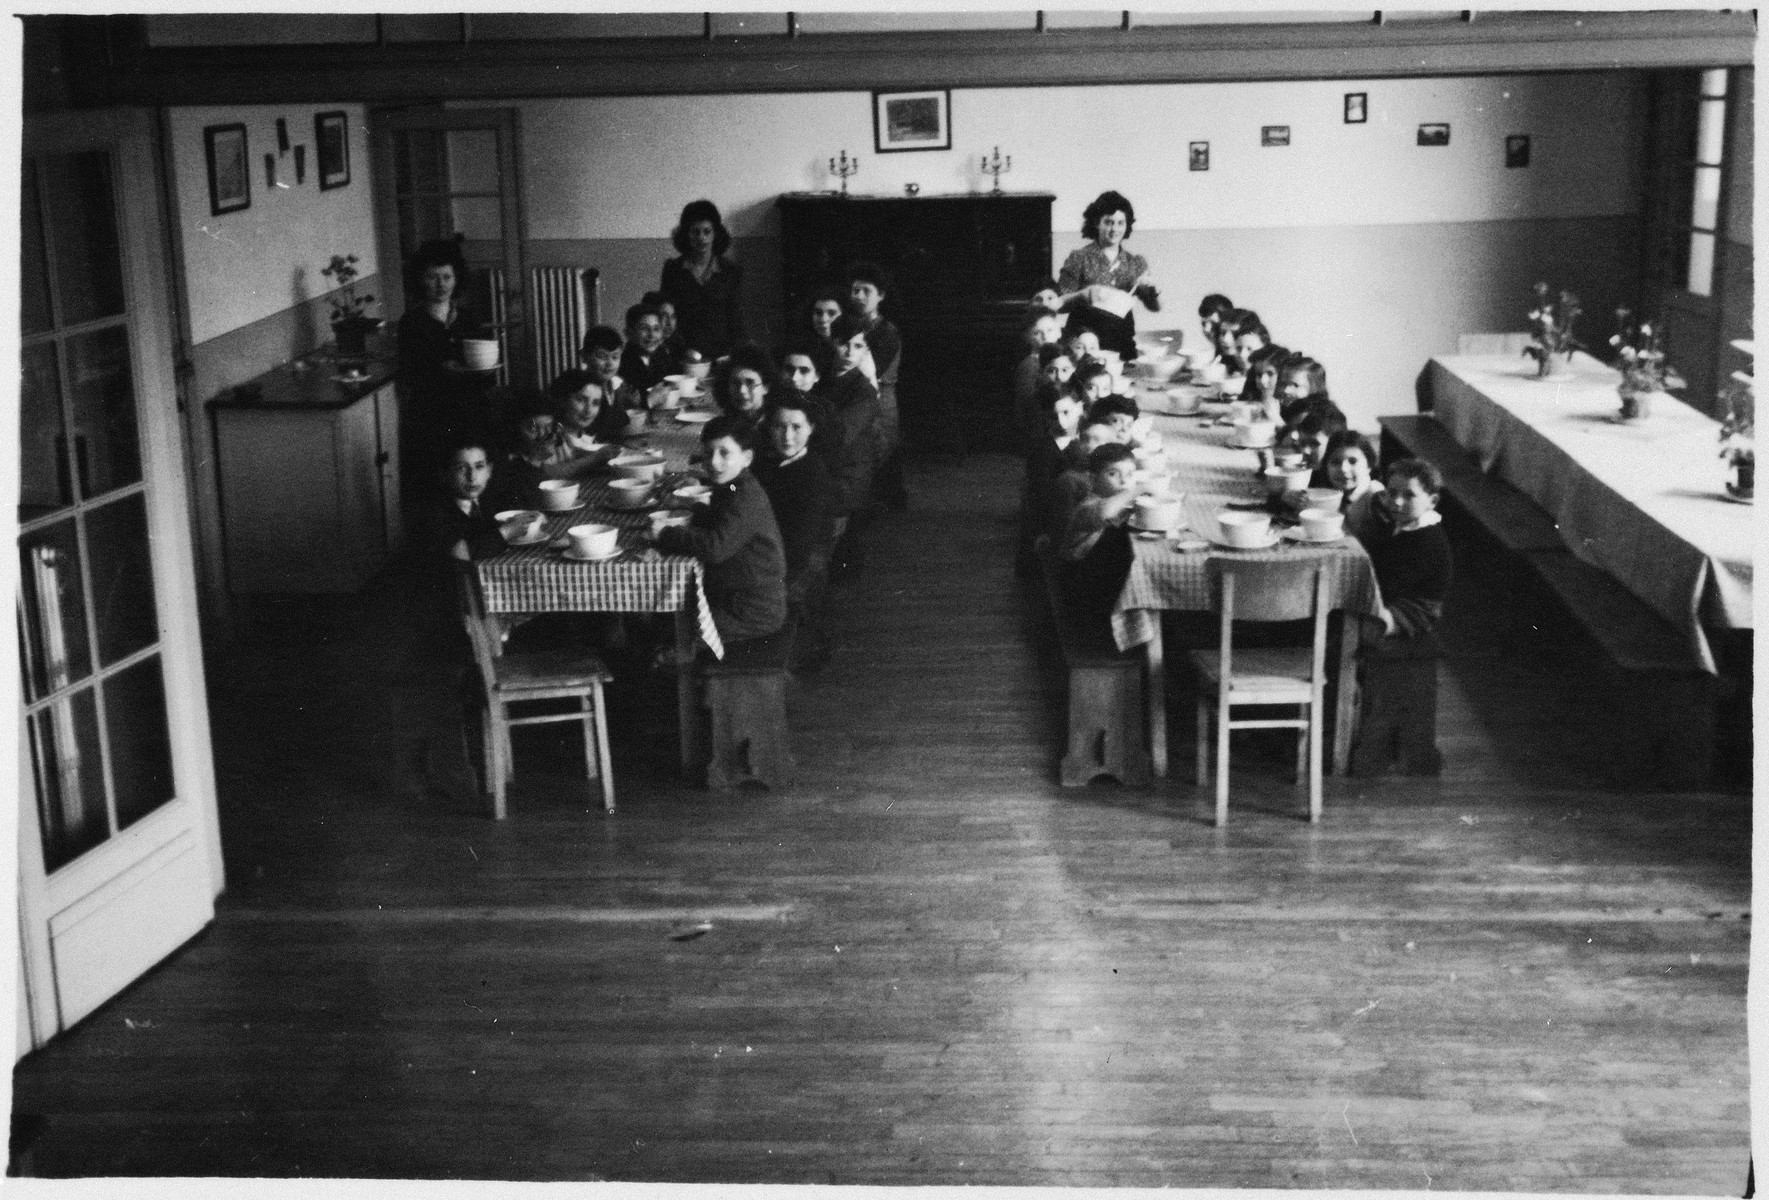 Children gather for a meal in a Jewish children's home in Antwerp.